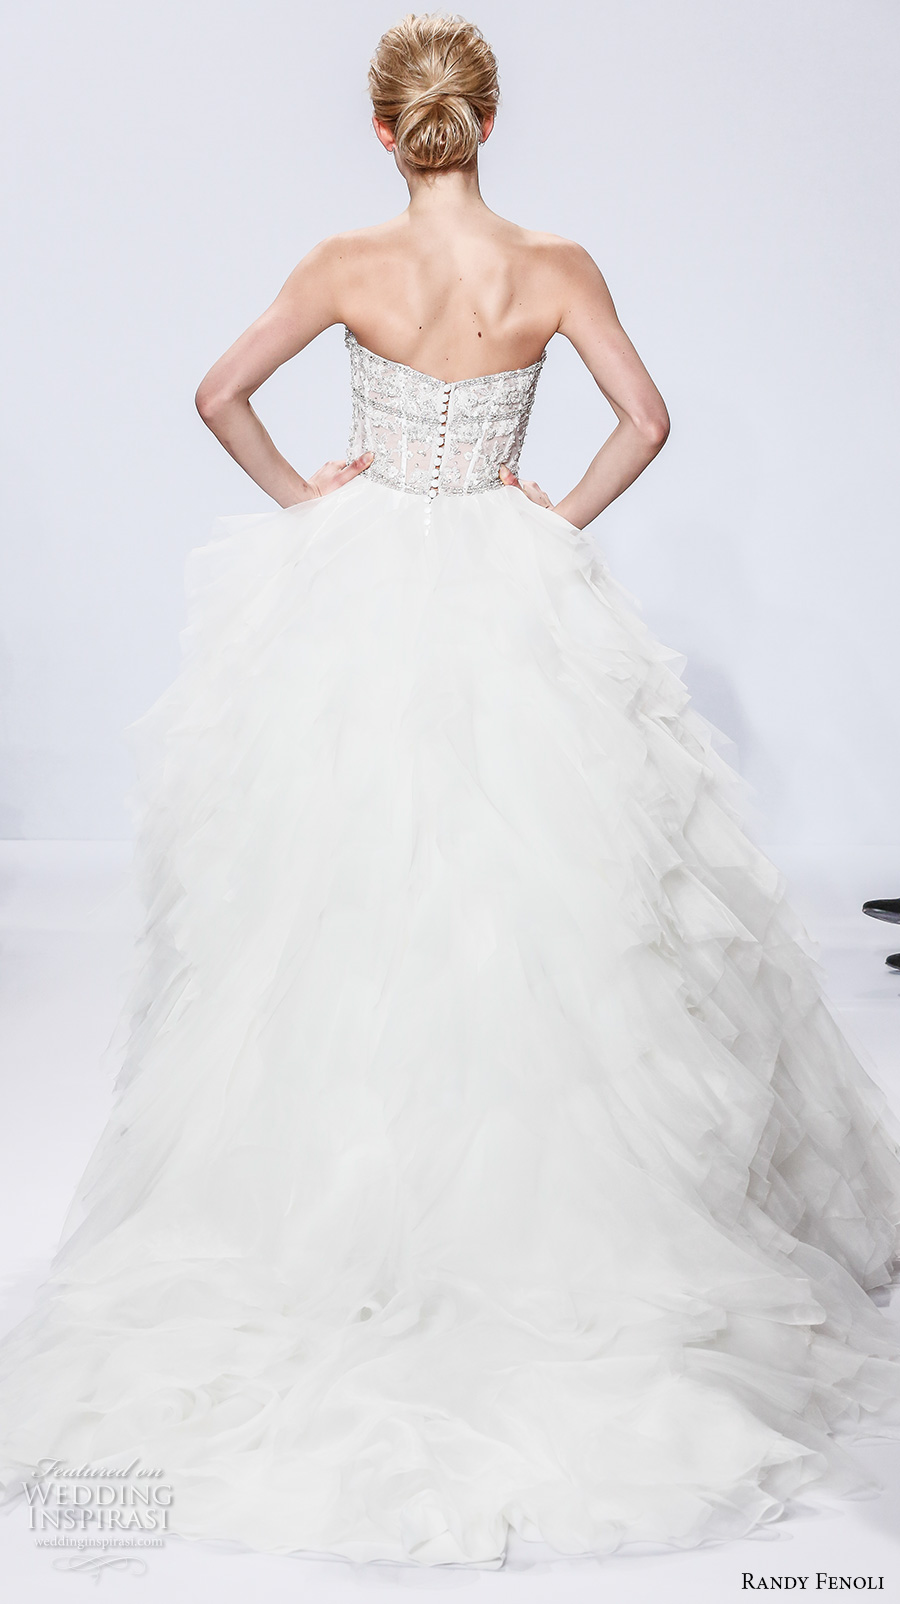 randy fenoli spring 2018 bridal strapless sweetheart neckline heavily embellished bodice ruffled skirt princess ball gown wedding dress chapel train (04) bv